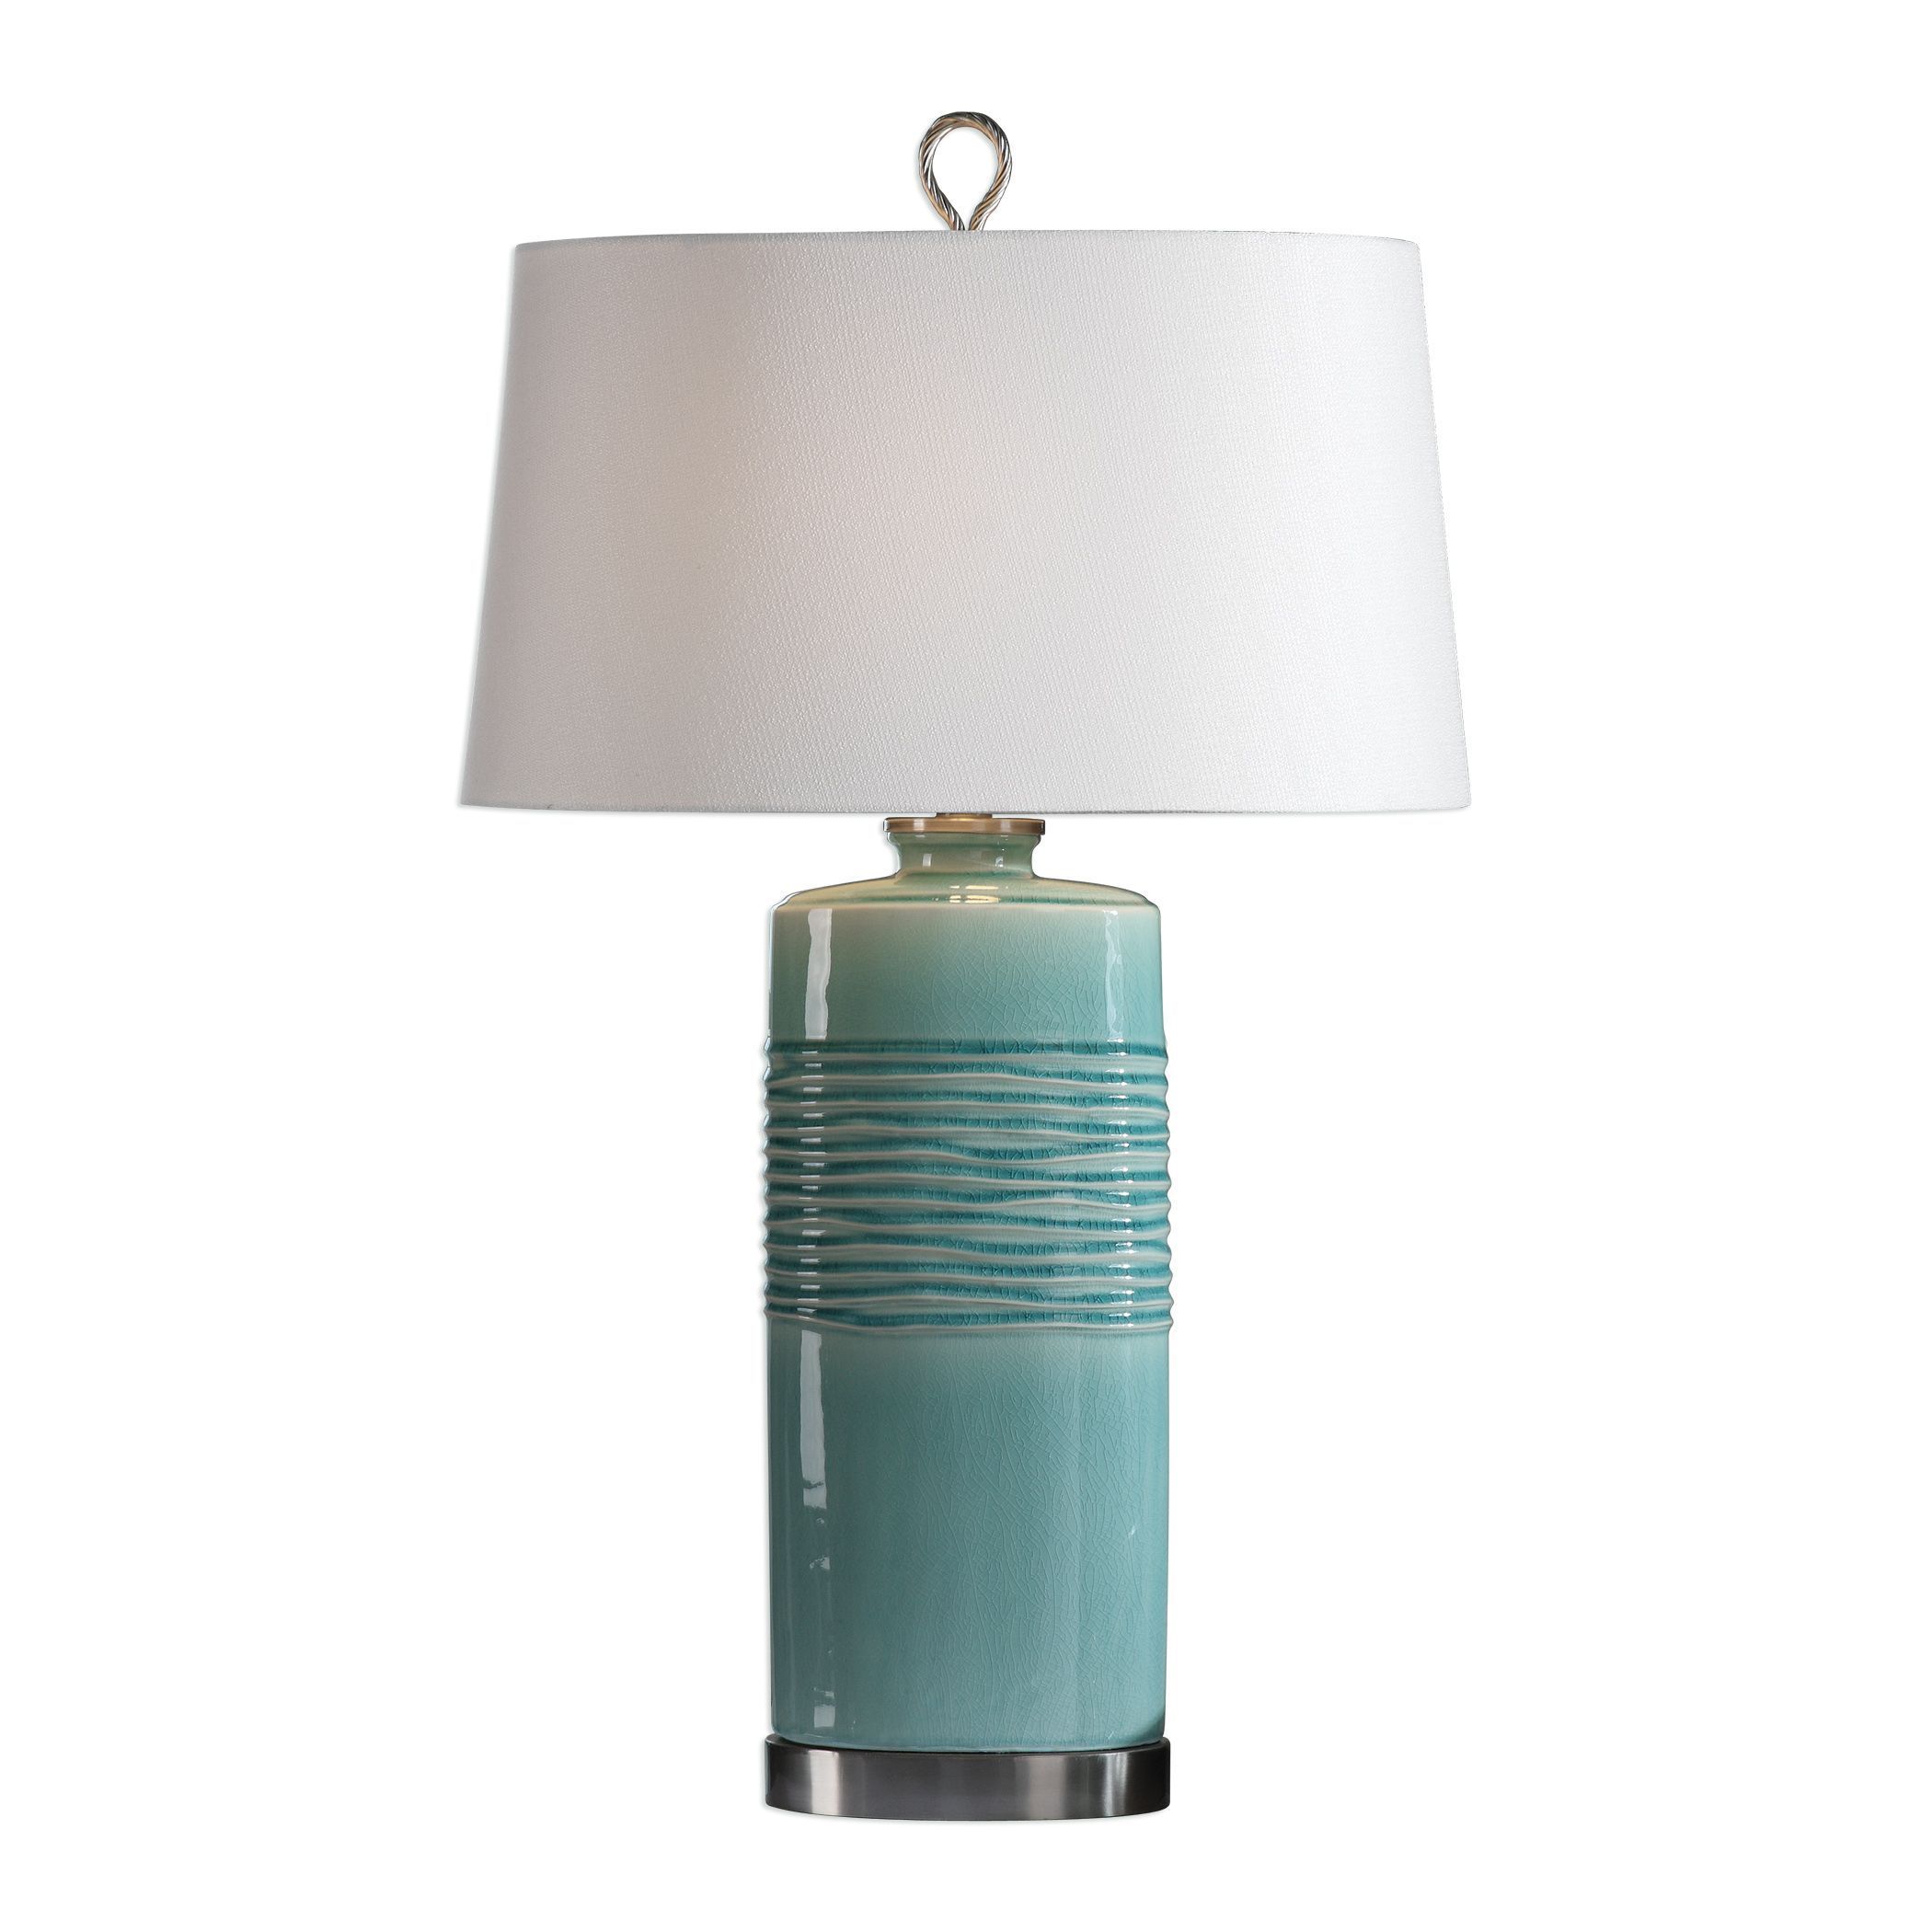 rila contemporary aquamarine crackled ceramic table lamp accent lamps uttermost antique ship lights inch round tablecloth butterfly bedside display cabinet pieces vintage and